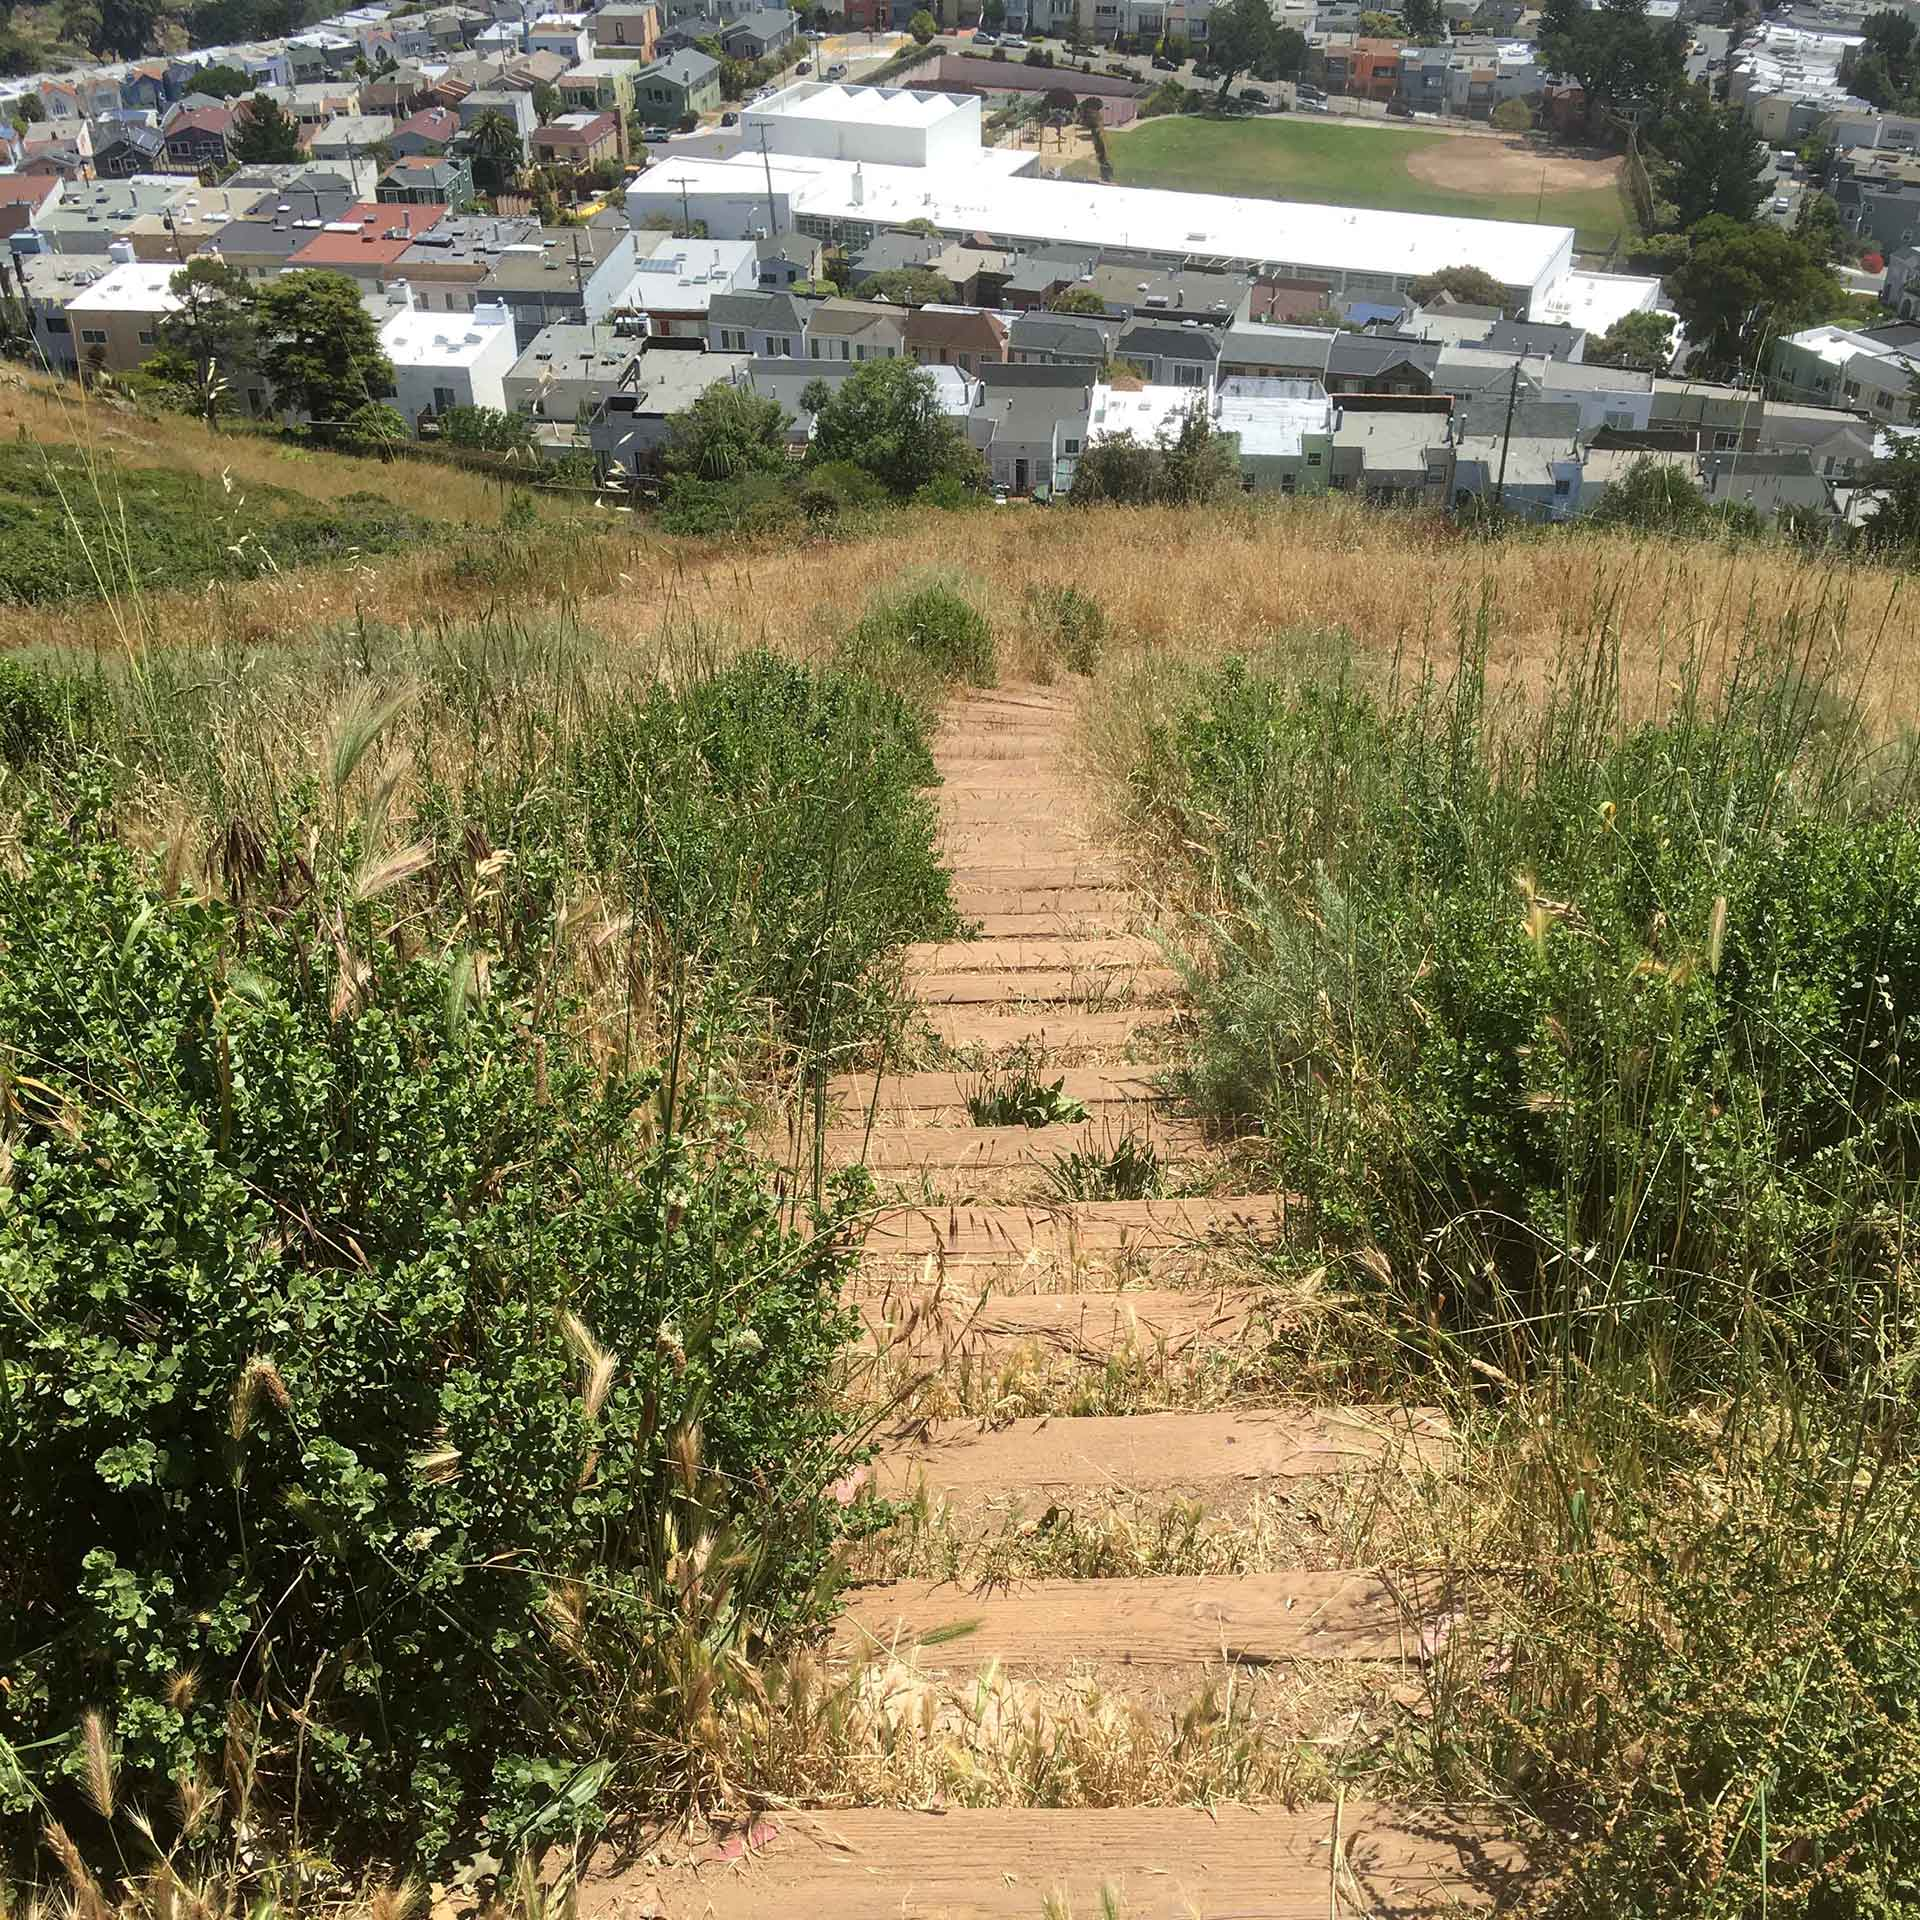 Photographs from Mount Davidson 3